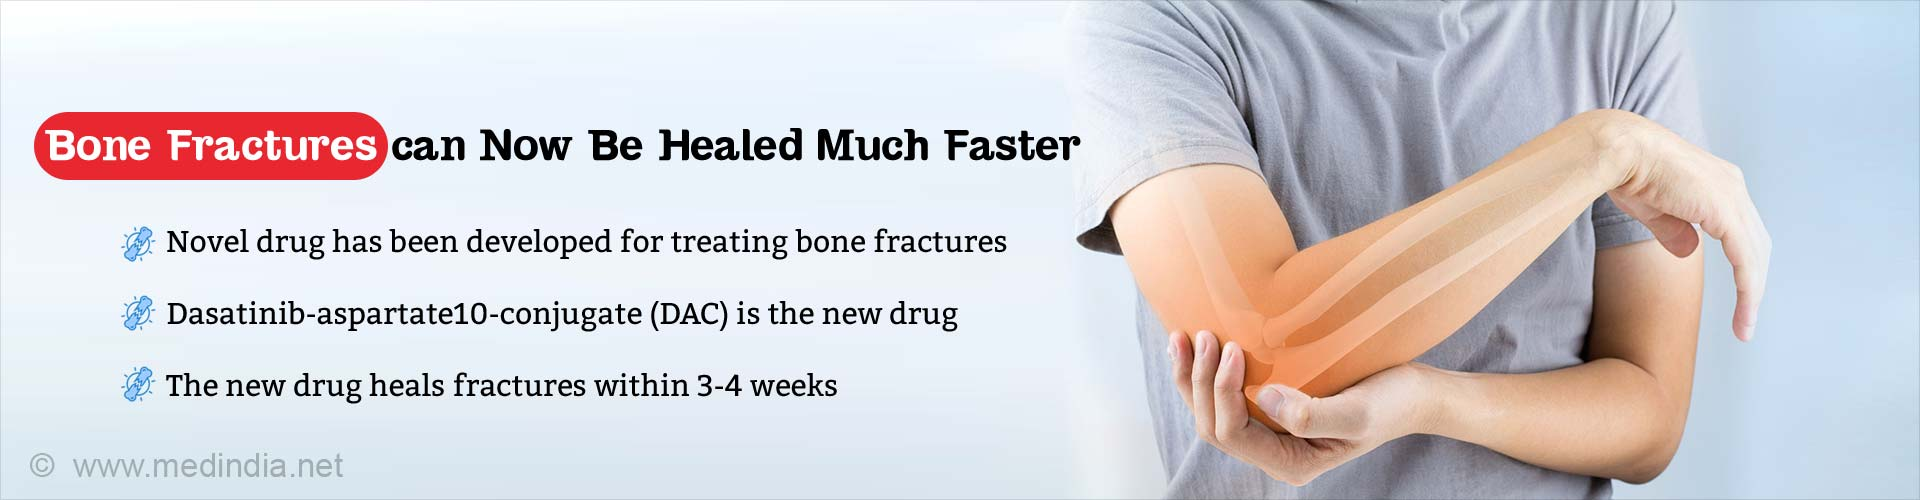 Bone fractures can now be healed much faster. Novel drug has been developed for treating bone fractures. Dasatinib-aspartate10-conjugate (DAC) is the new drug. The new drug heals fractures within 3-4 weeks.